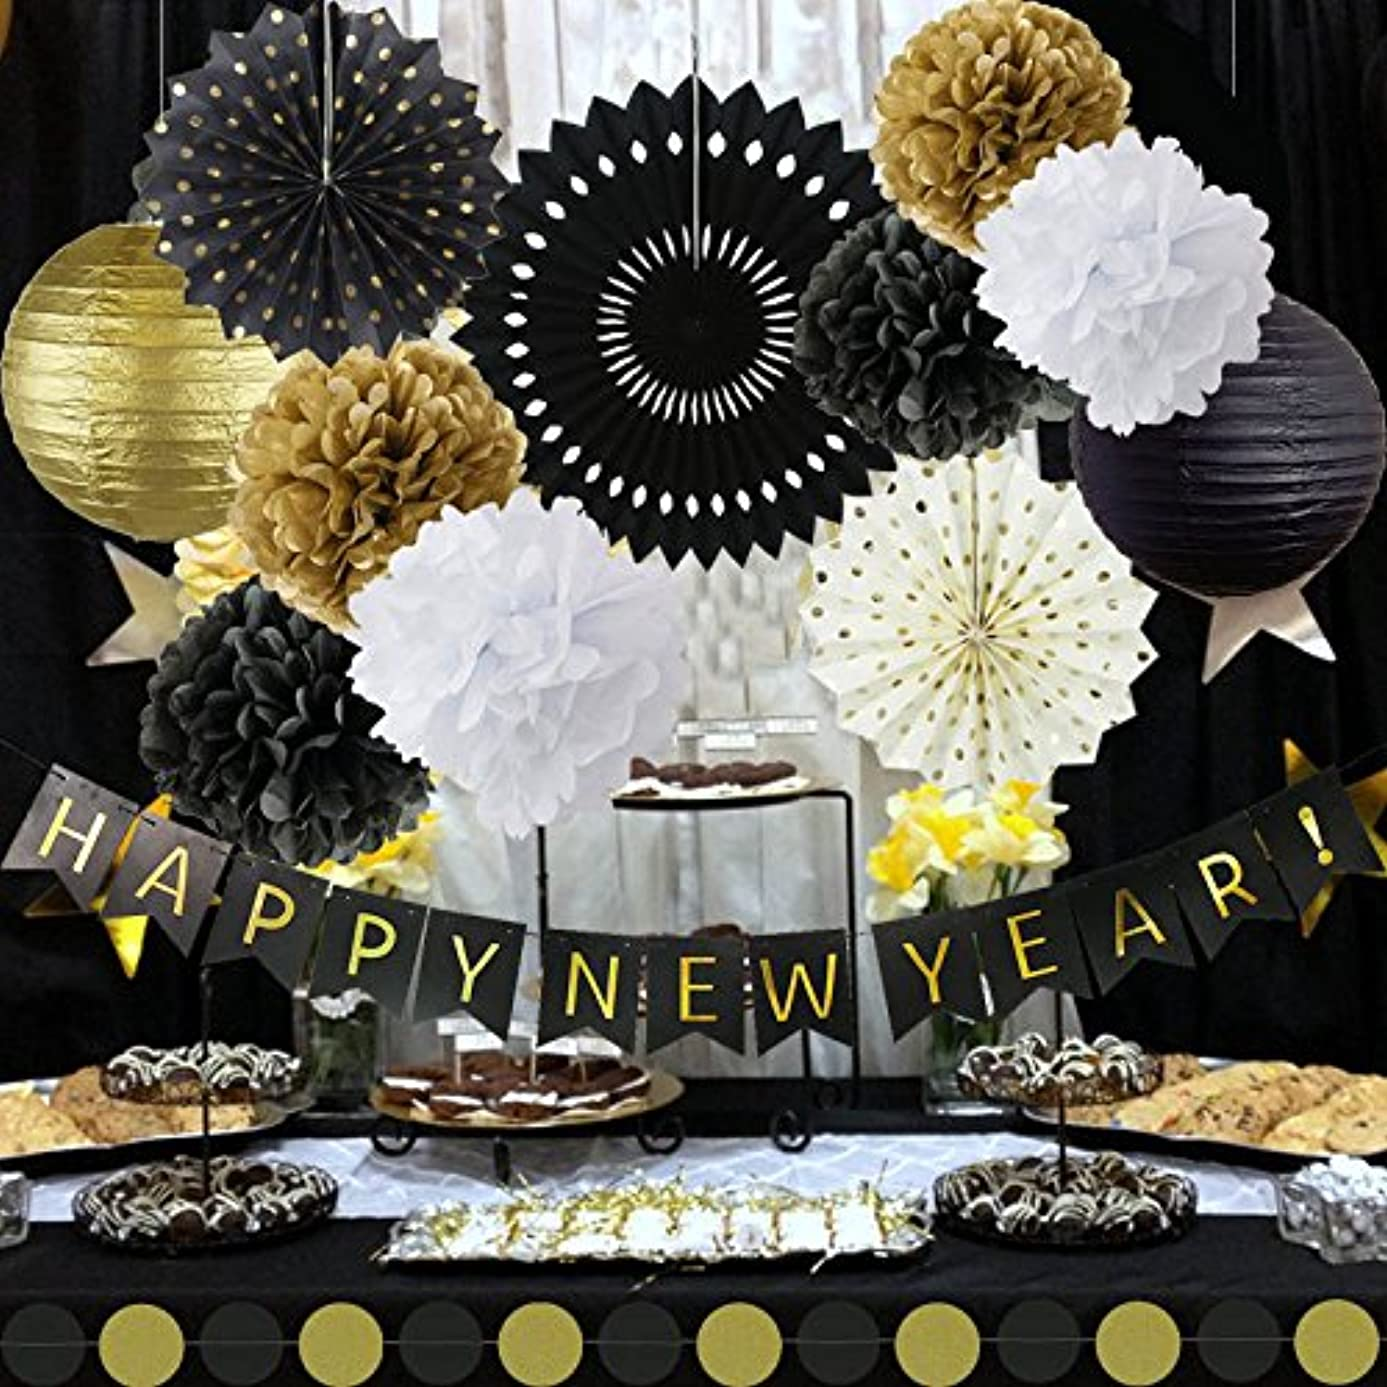 Happy New Year Decorations Happy New Year Banner Chinese Paper Lanterns Tissue Paper Flowers Pom Poms Hanging Paper Fans New Years Eve Party Decorations Kit